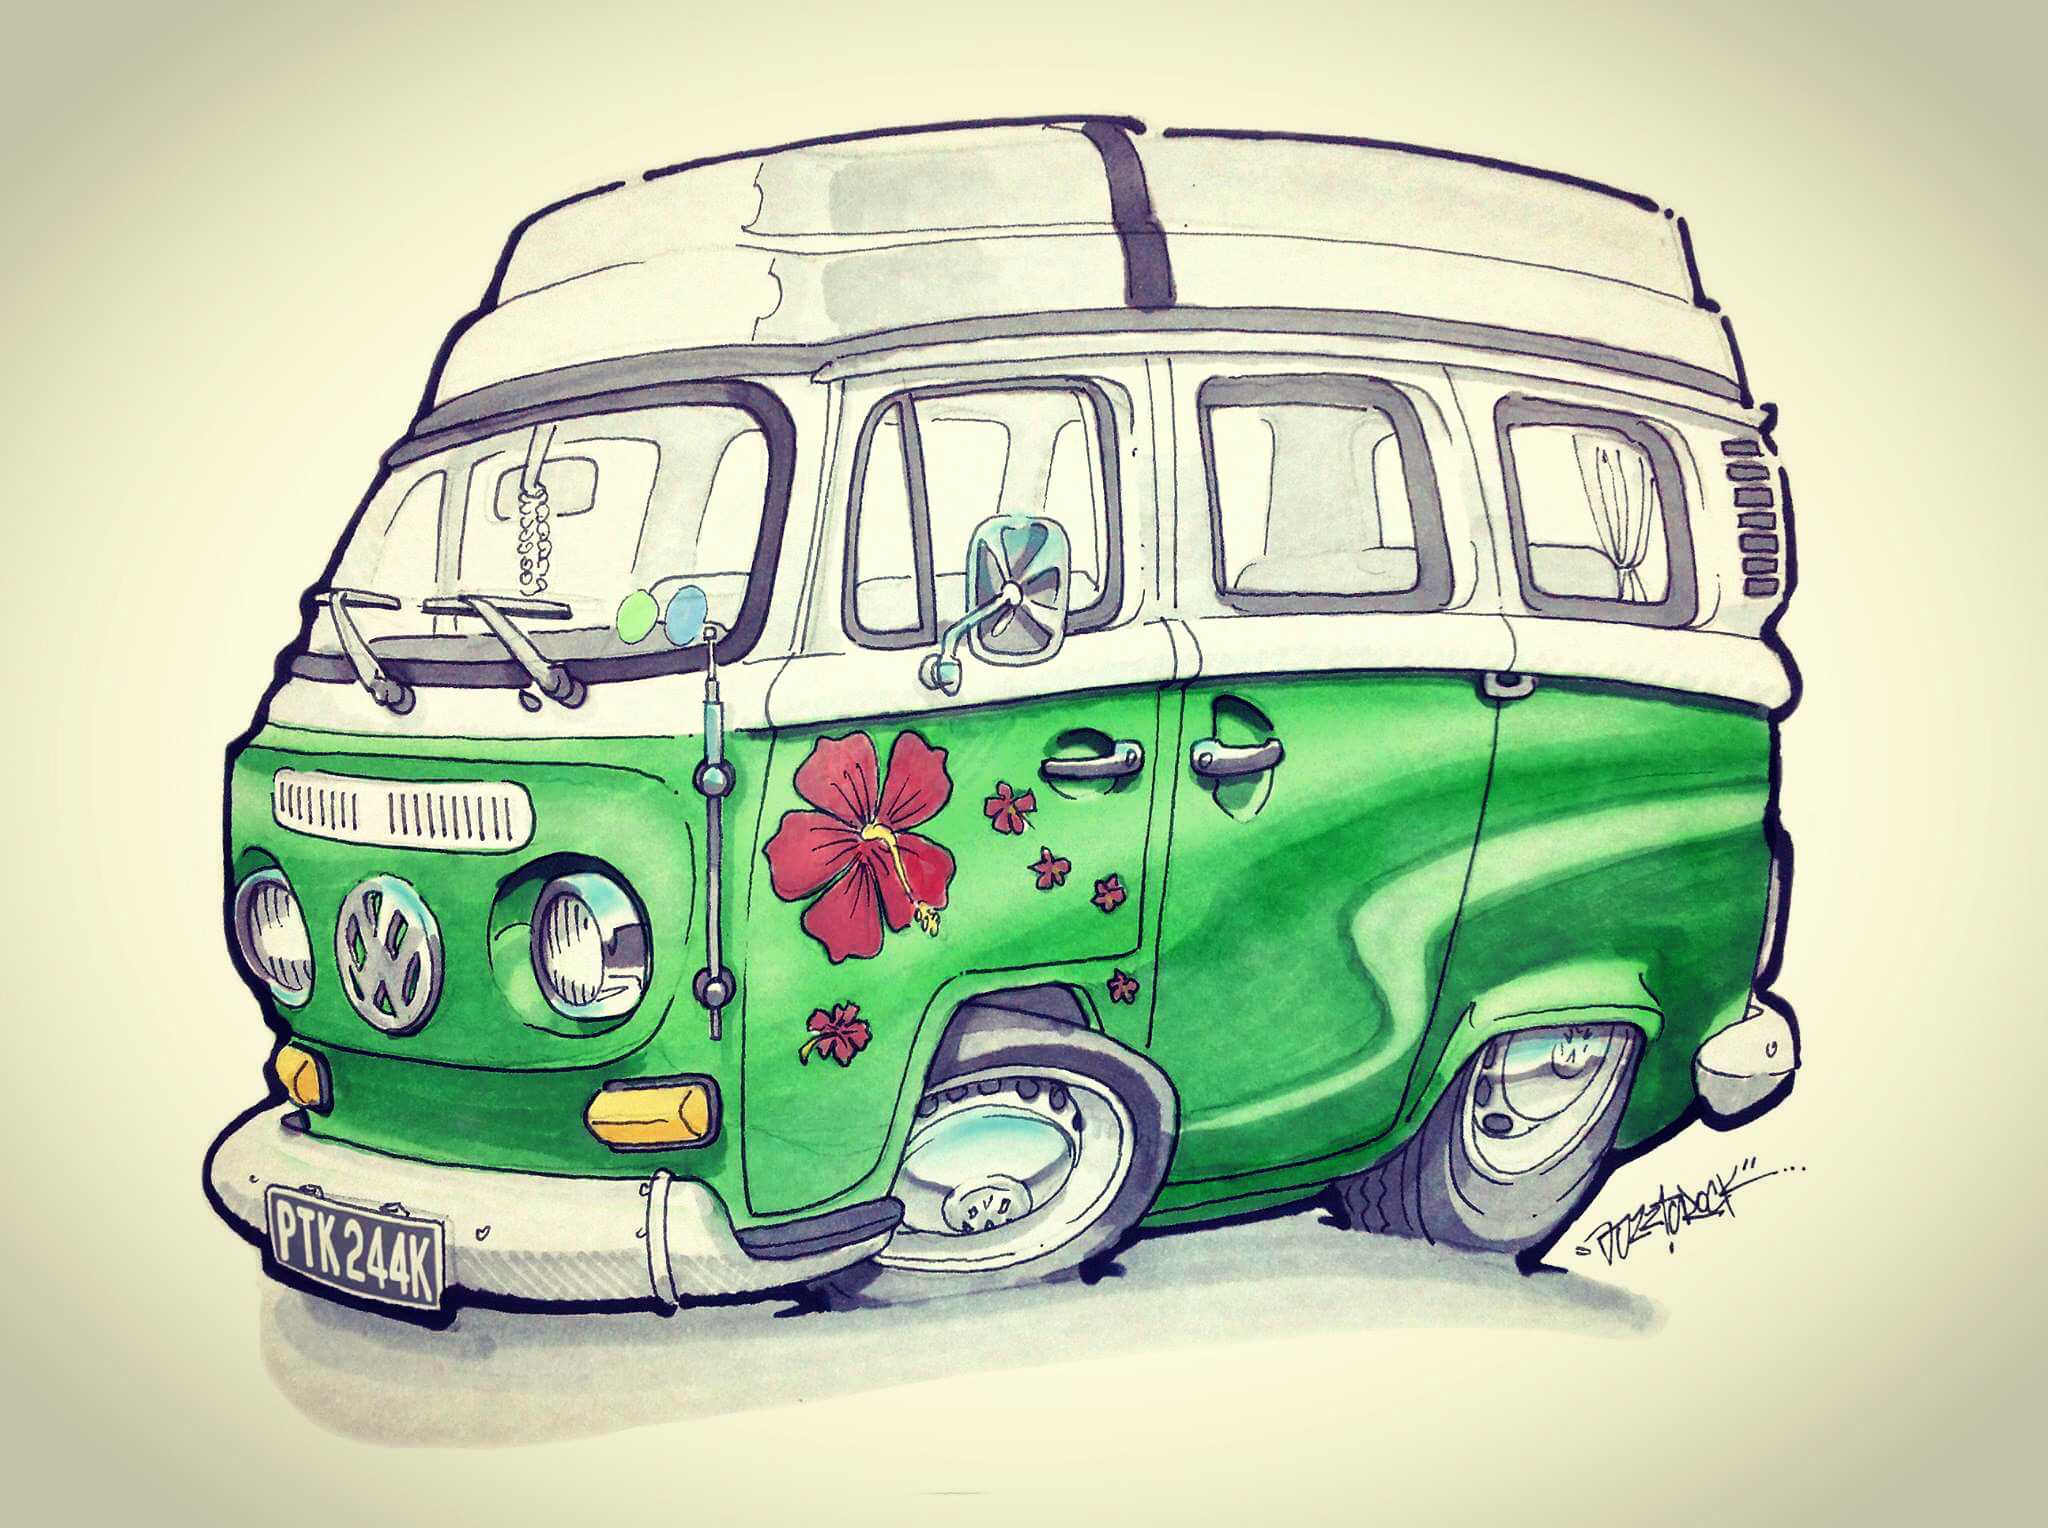 Vw Bus Drawing At Free For Personal Use Vanair Wiring Diagram 2048x1528 Commissioned Volkswagen Bay Window T2 Camper Van Air